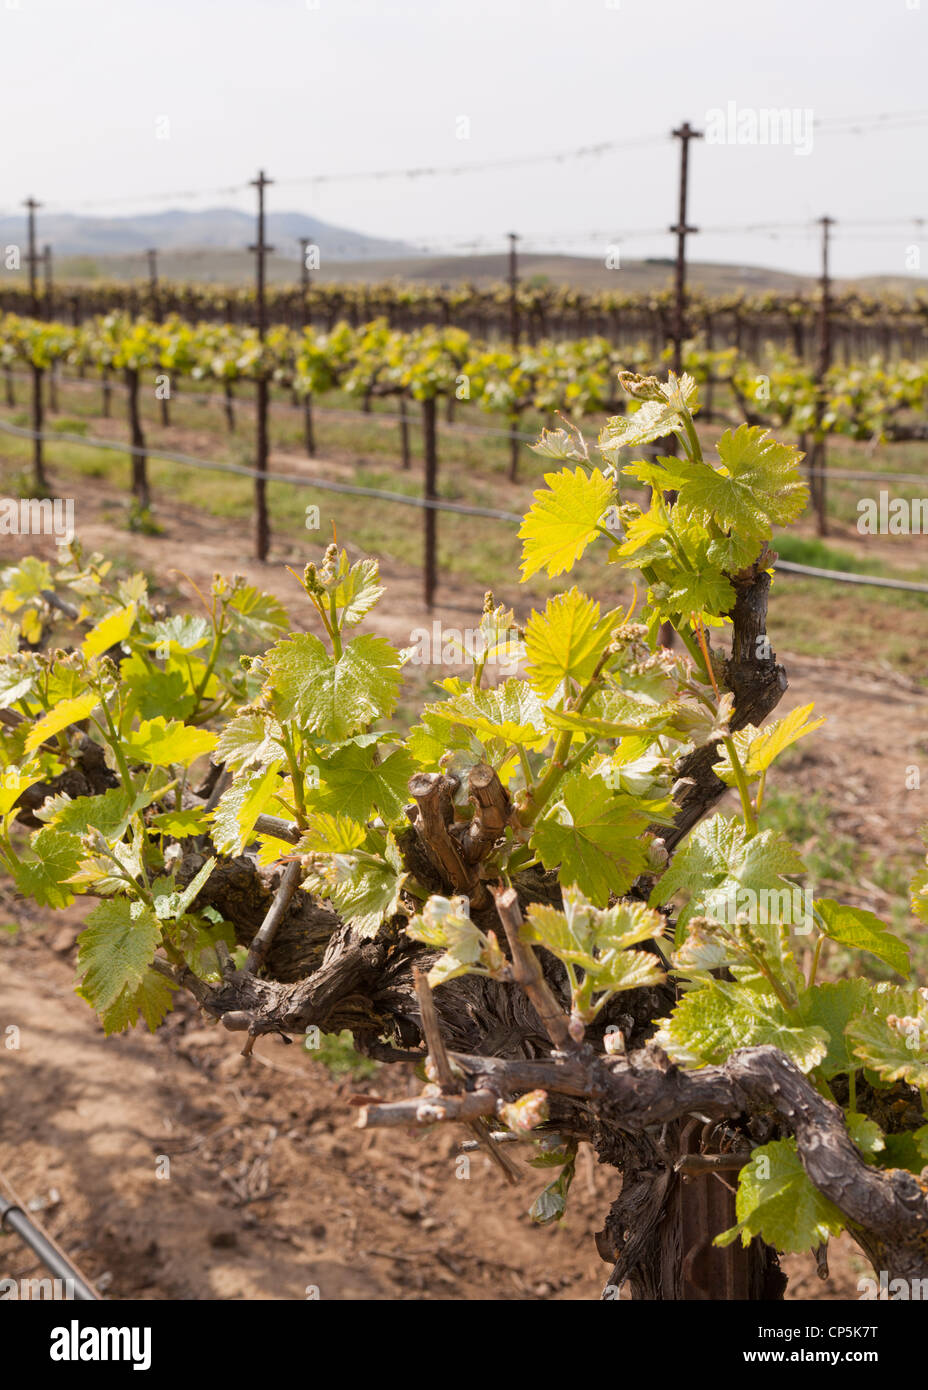 Spring growth of commercial grape vineyard in Central California, USA Stock Photo